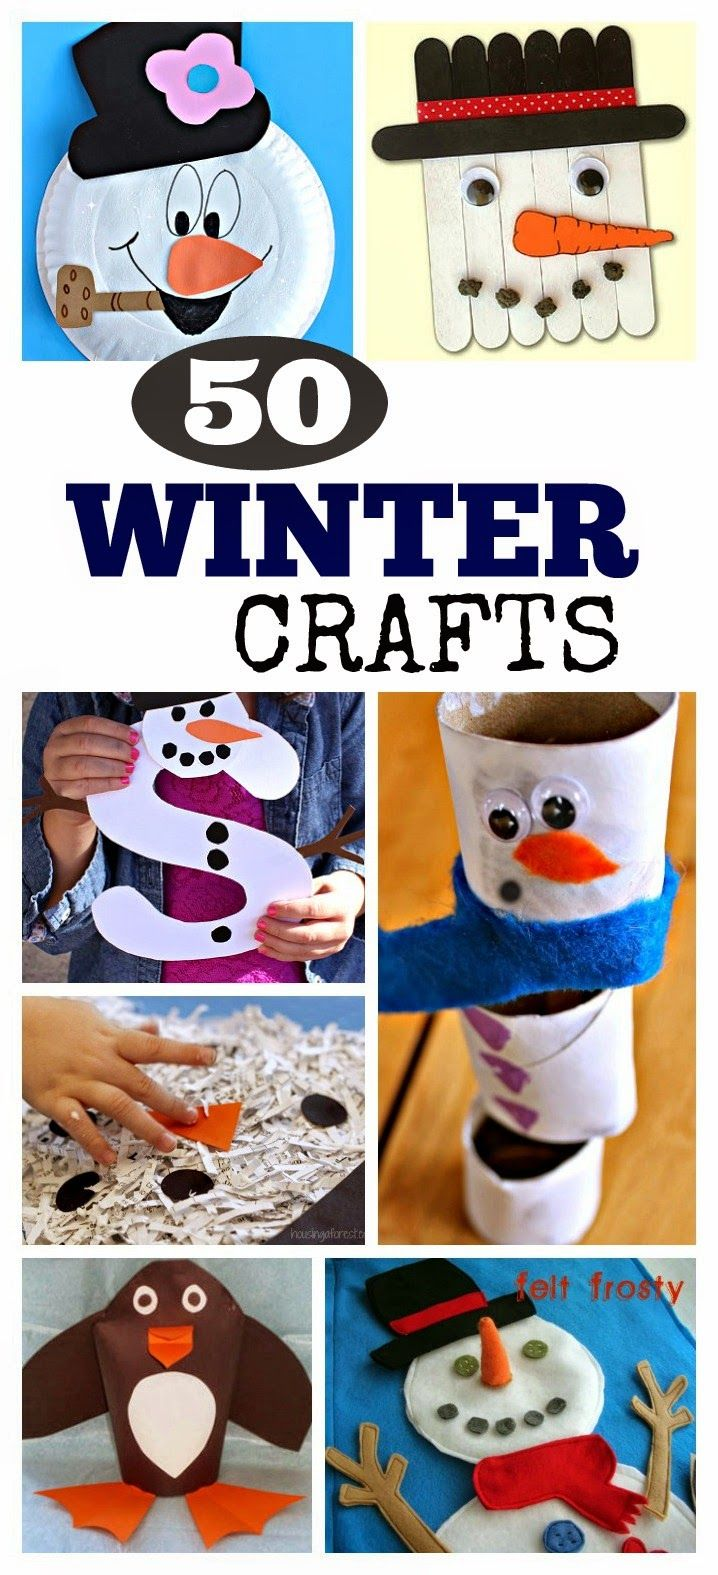 50 Winter Crafts Kids Love- so many fun ideas!